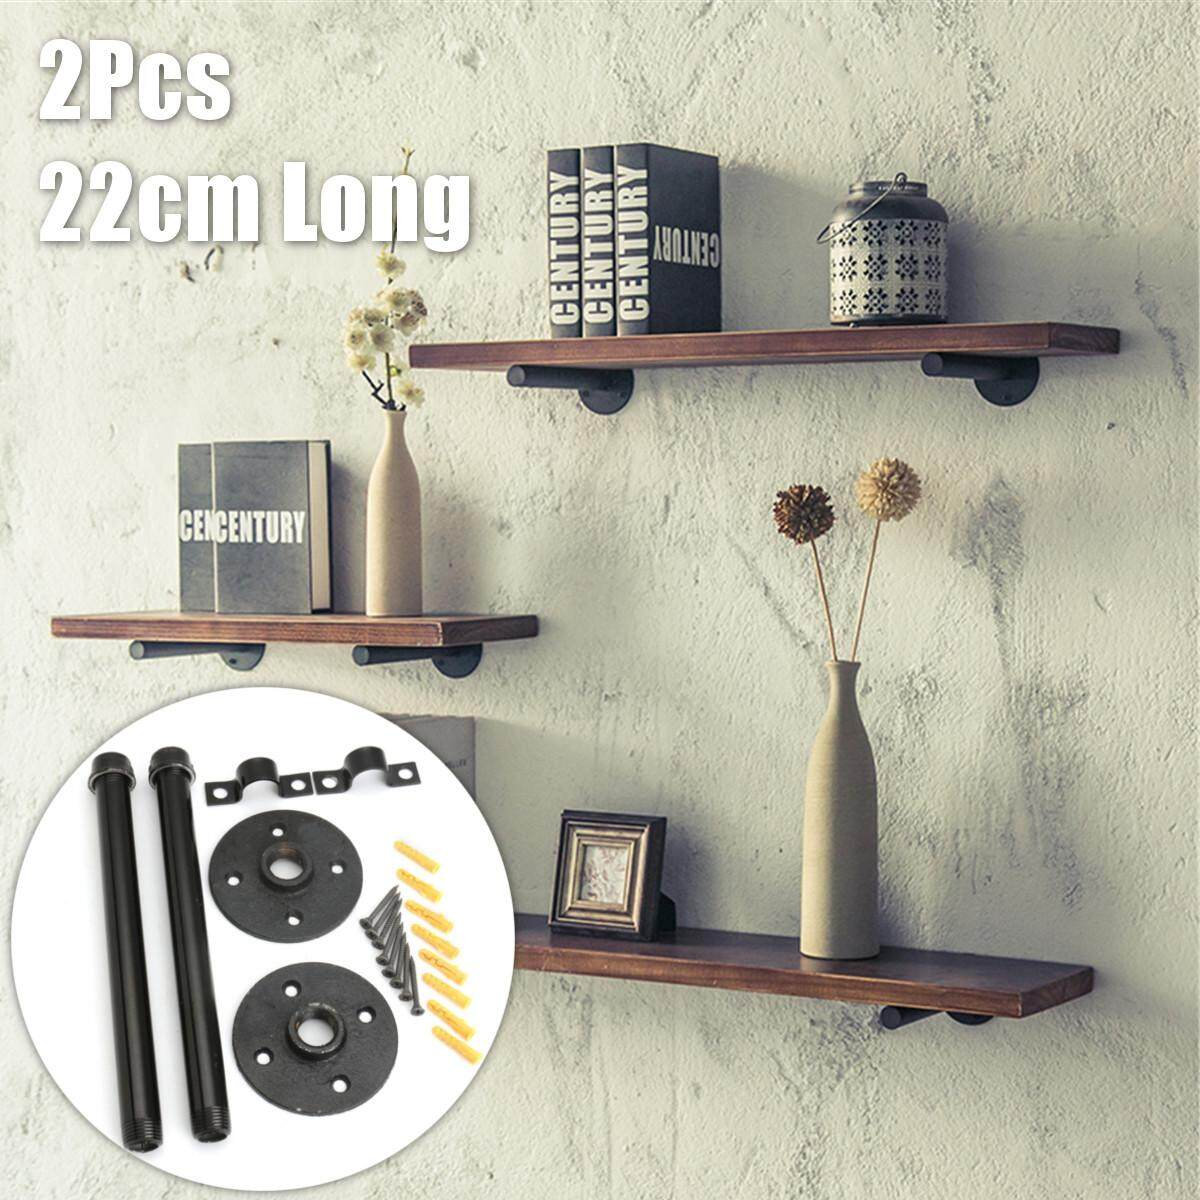 2Pcs 8.7 Industrial Vintage Pipe Wall Shelf Brackets Holder DIY for Steampunk